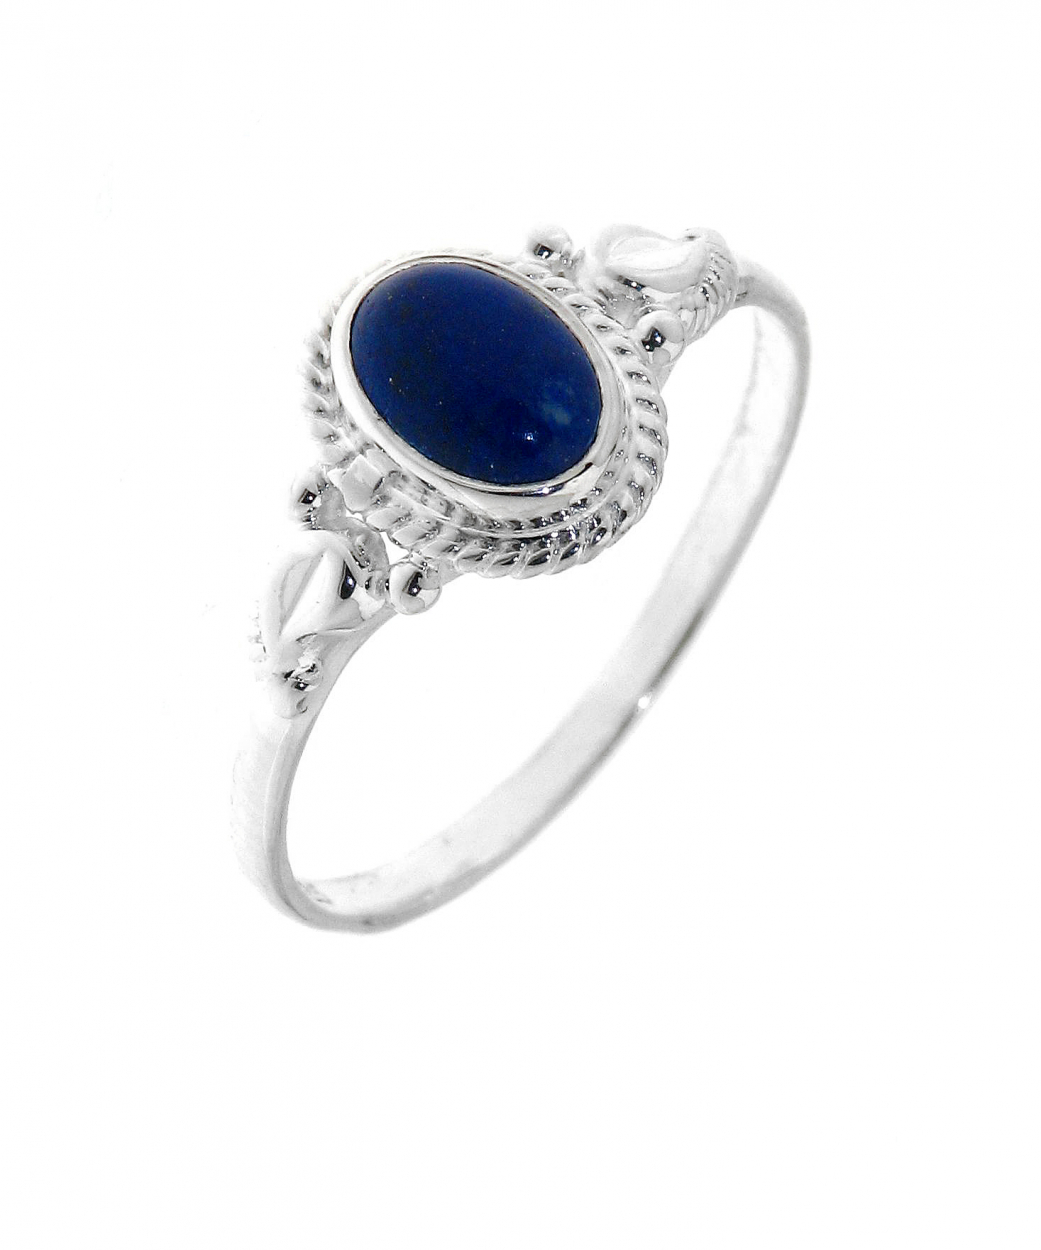 bague argent 925 lapis lazuli pierre ovale 7x5mm ref 32063. Black Bedroom Furniture Sets. Home Design Ideas